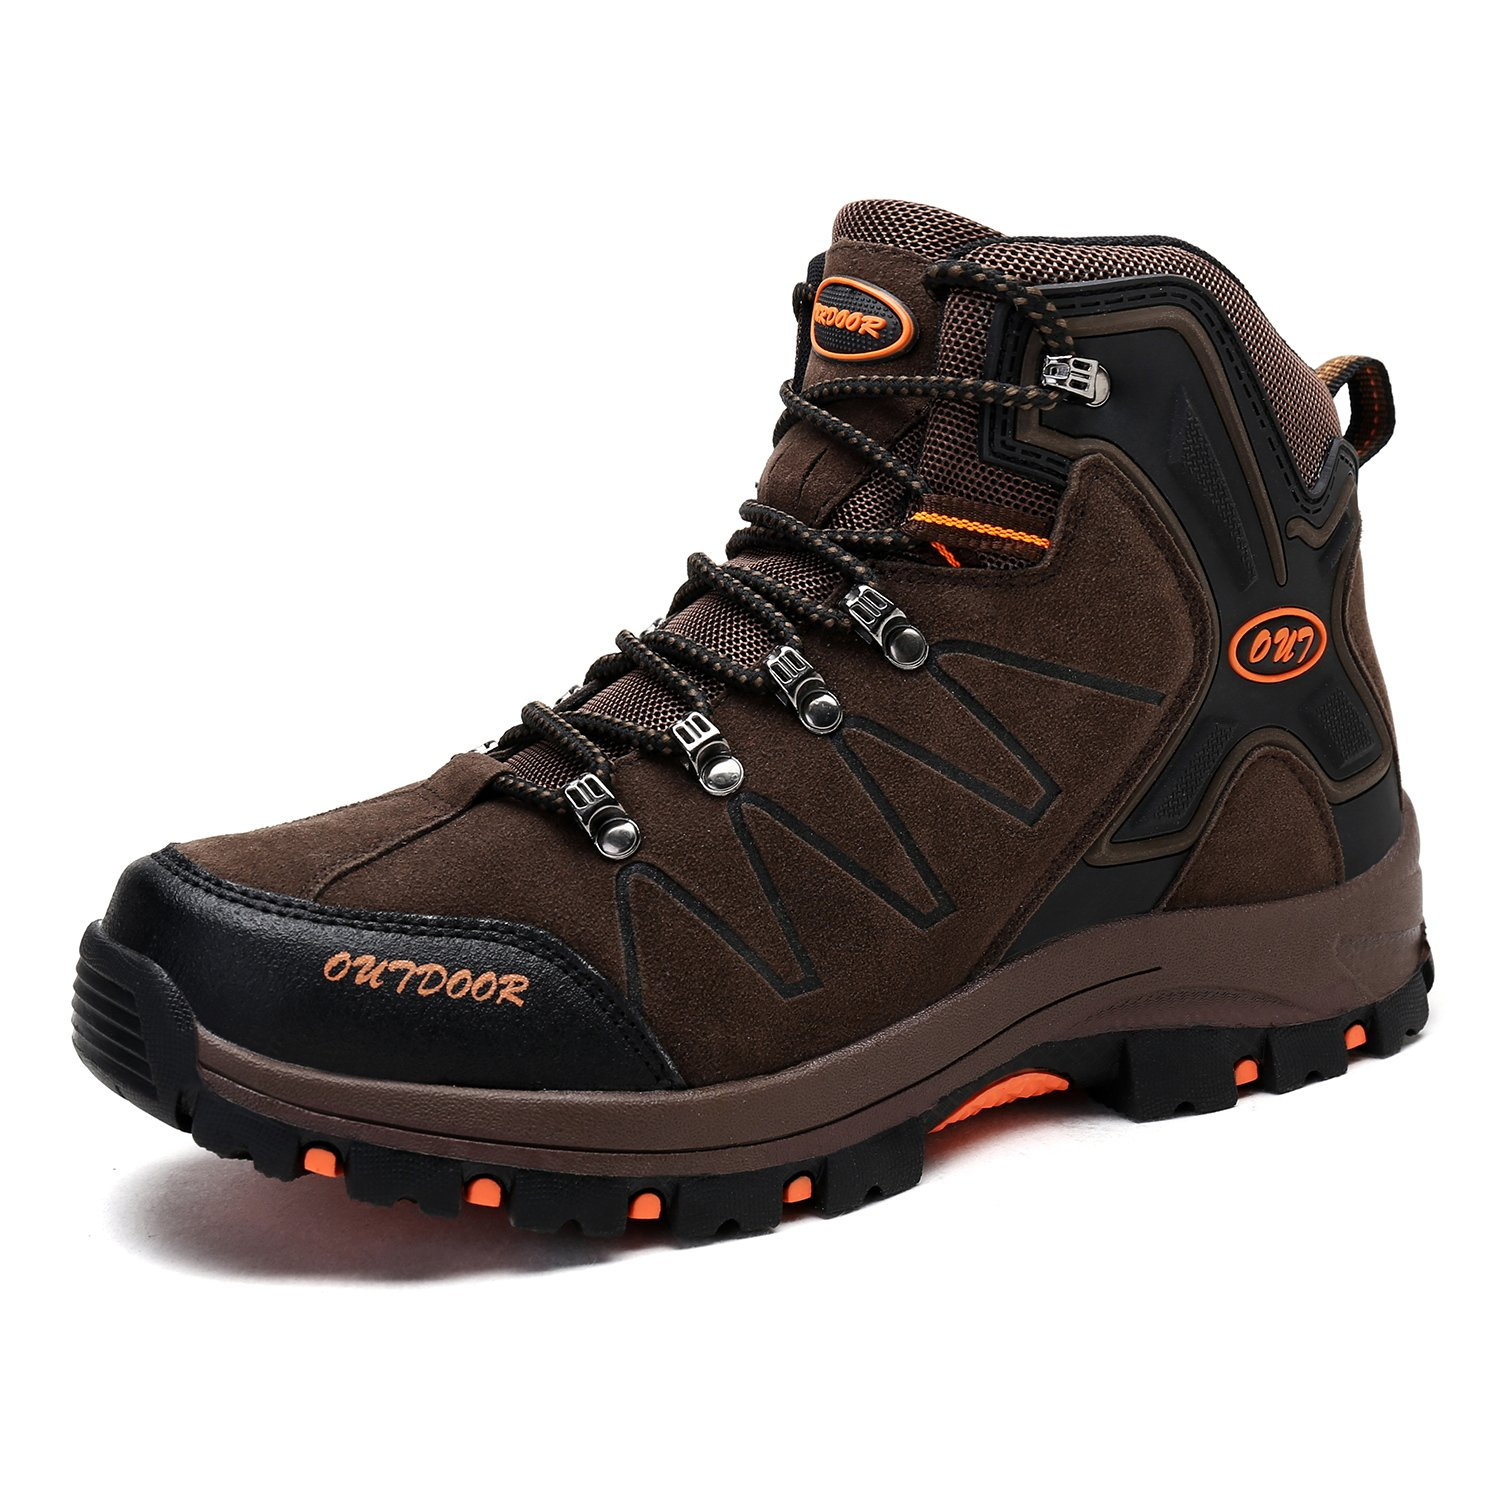 Men's Mid Trekking Hiking Boots Outdoor Lightweight Hiker